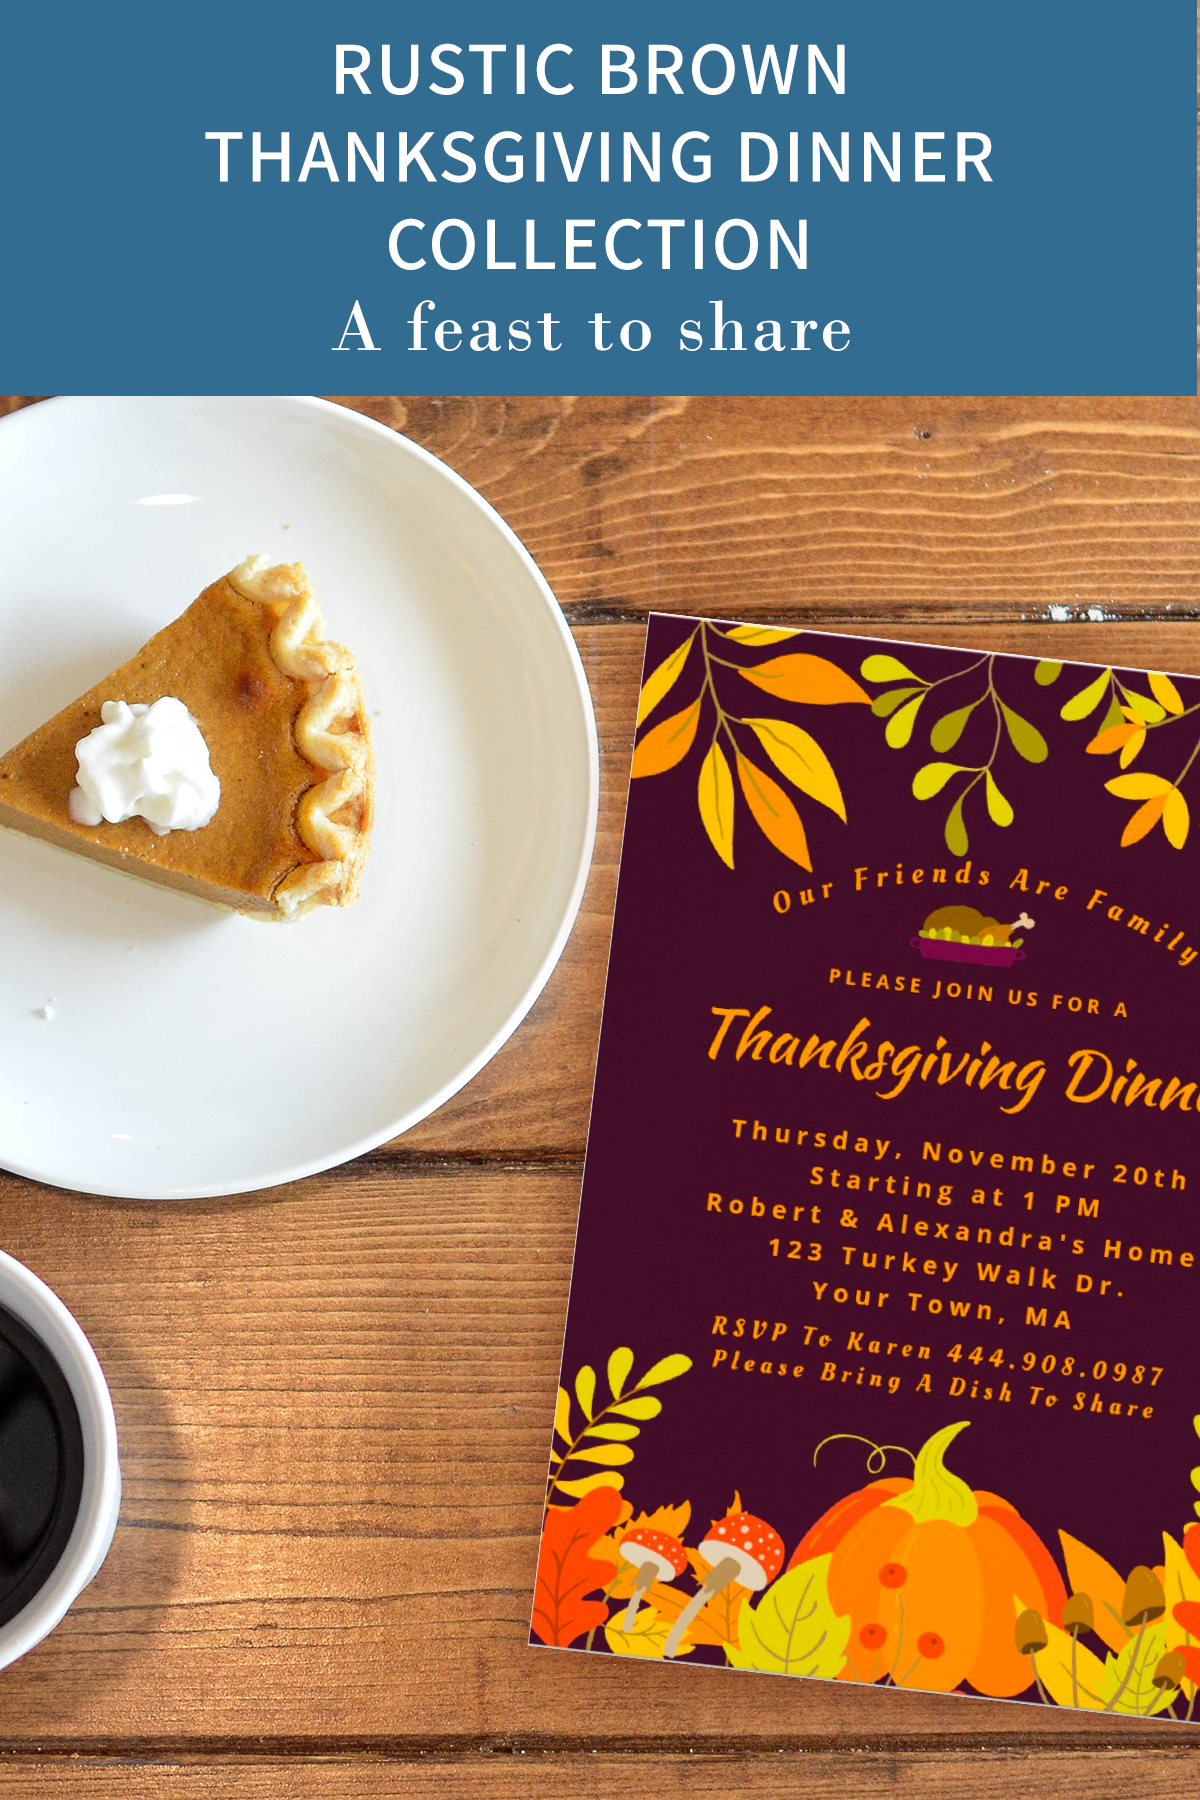 Rustic Brown Thanksgiving Dinner Collection #thanksgivingdinnertable Thanksgivin…